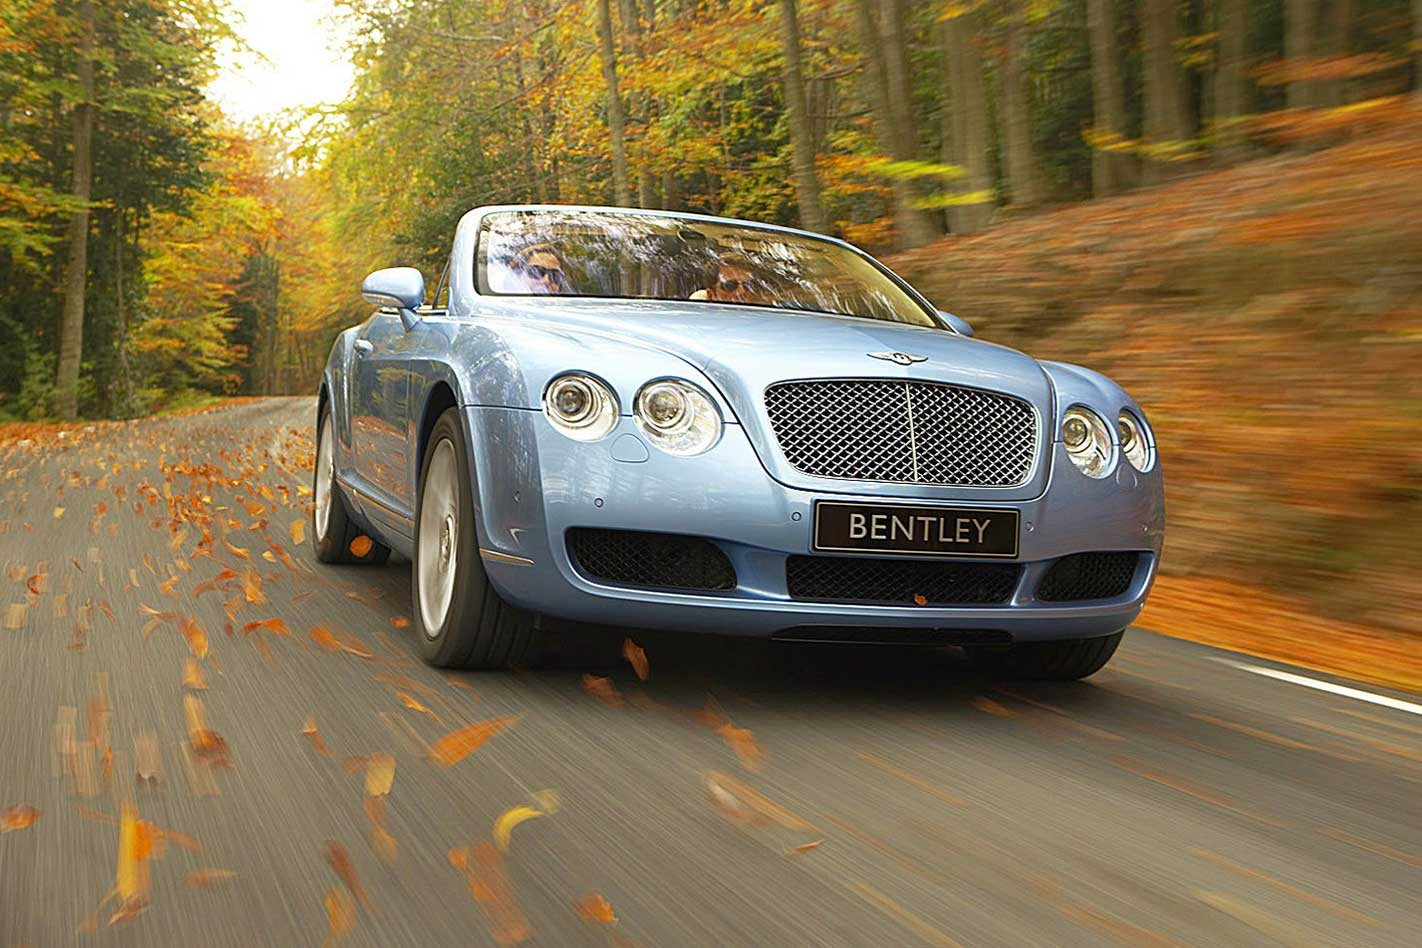 2006 Bentley Continental GTC review: classic MOTOR